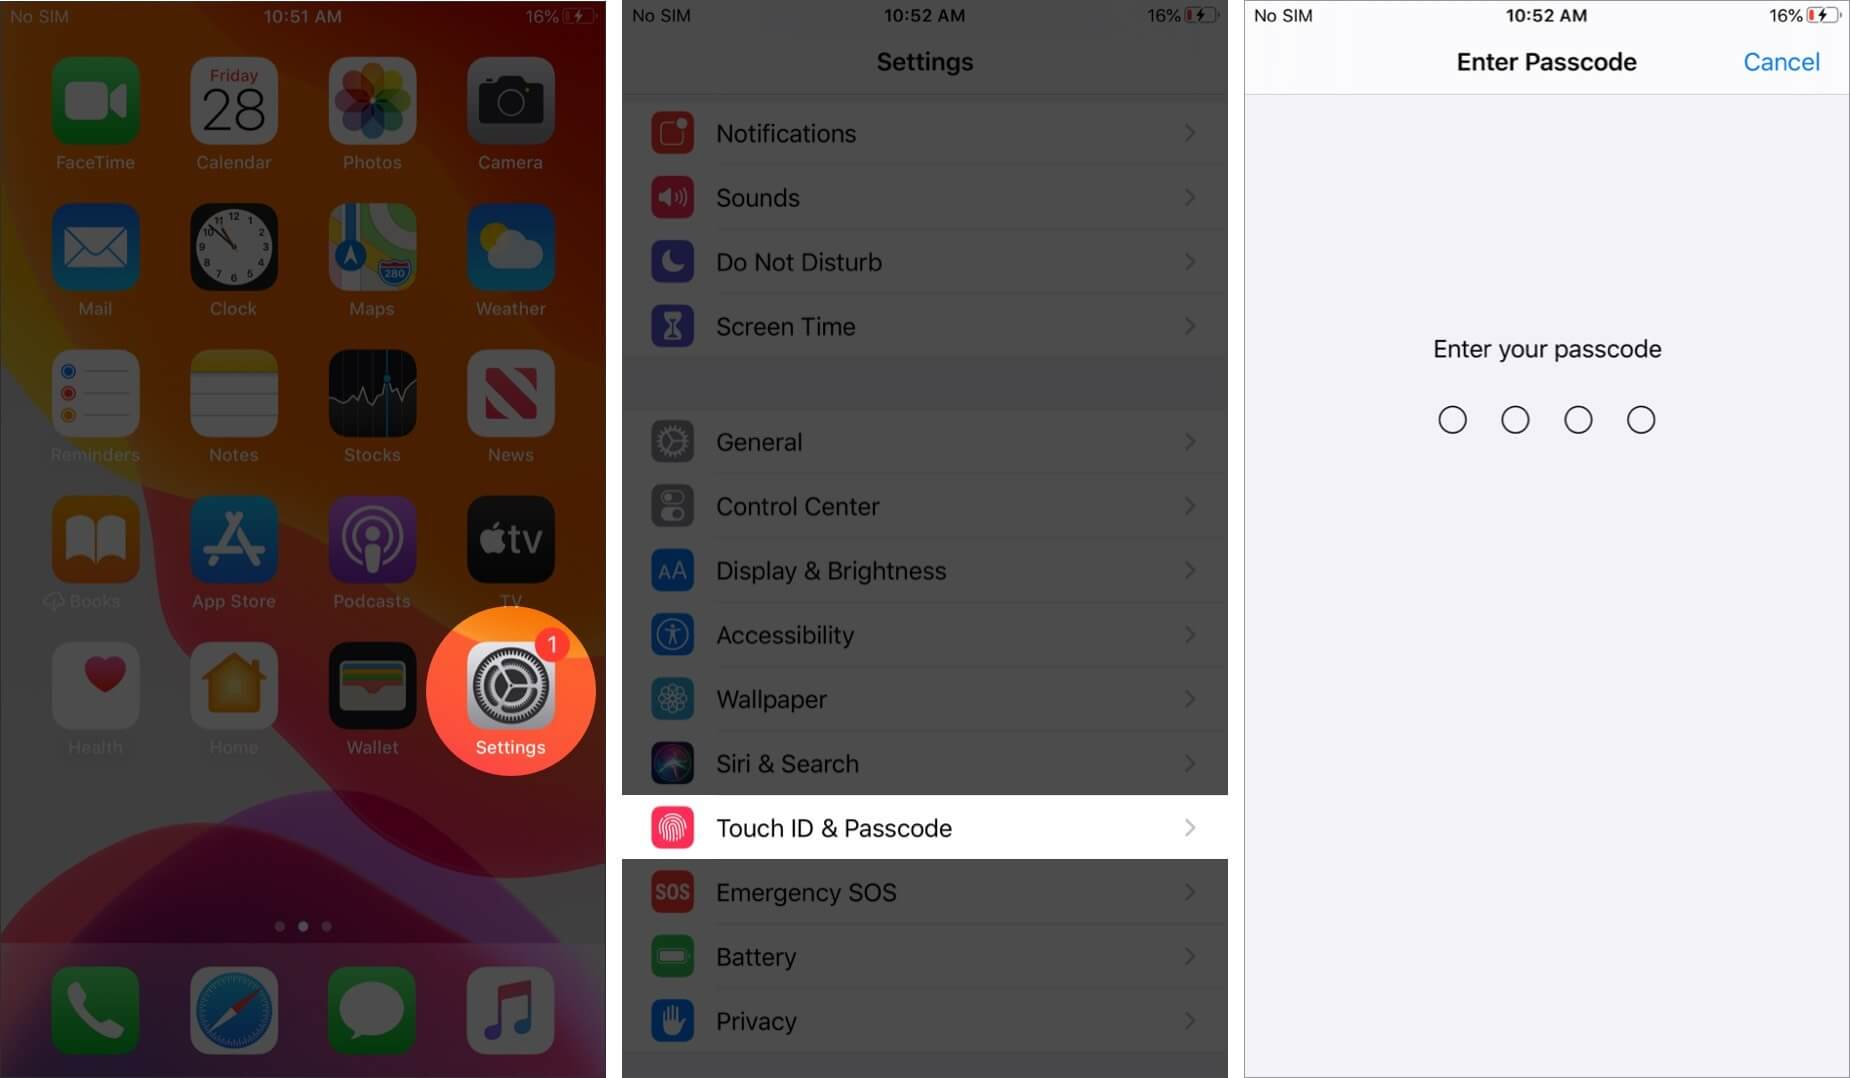 open settings and tap on touch id and passcode